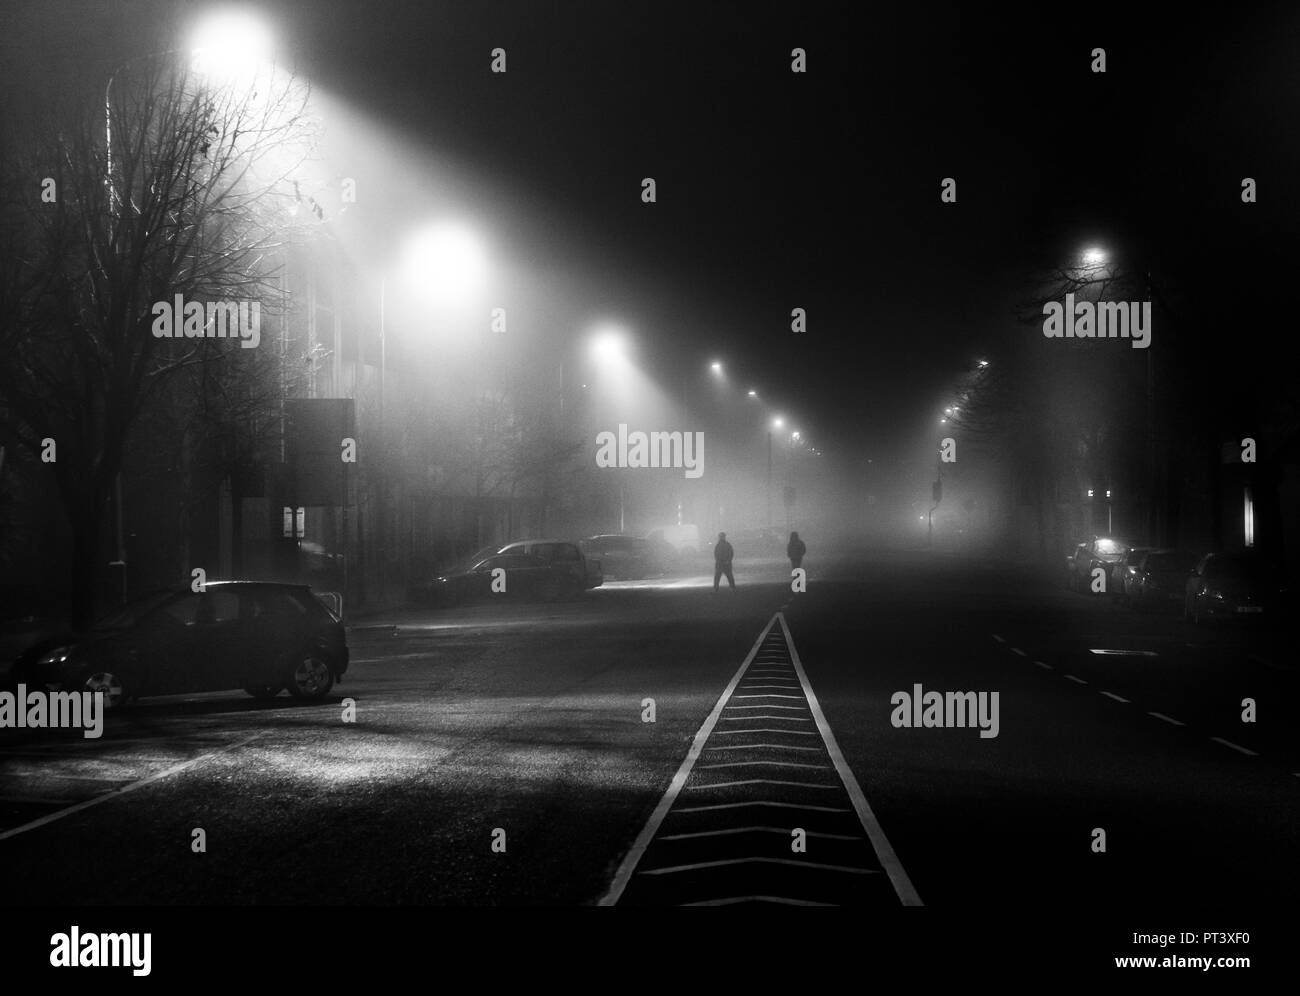 Cork City, Cork, Ireland.  11th December, 2016  Two people cross the street as early morning fog envelops the South Mall in Cork City, Ireland. - Stock Image